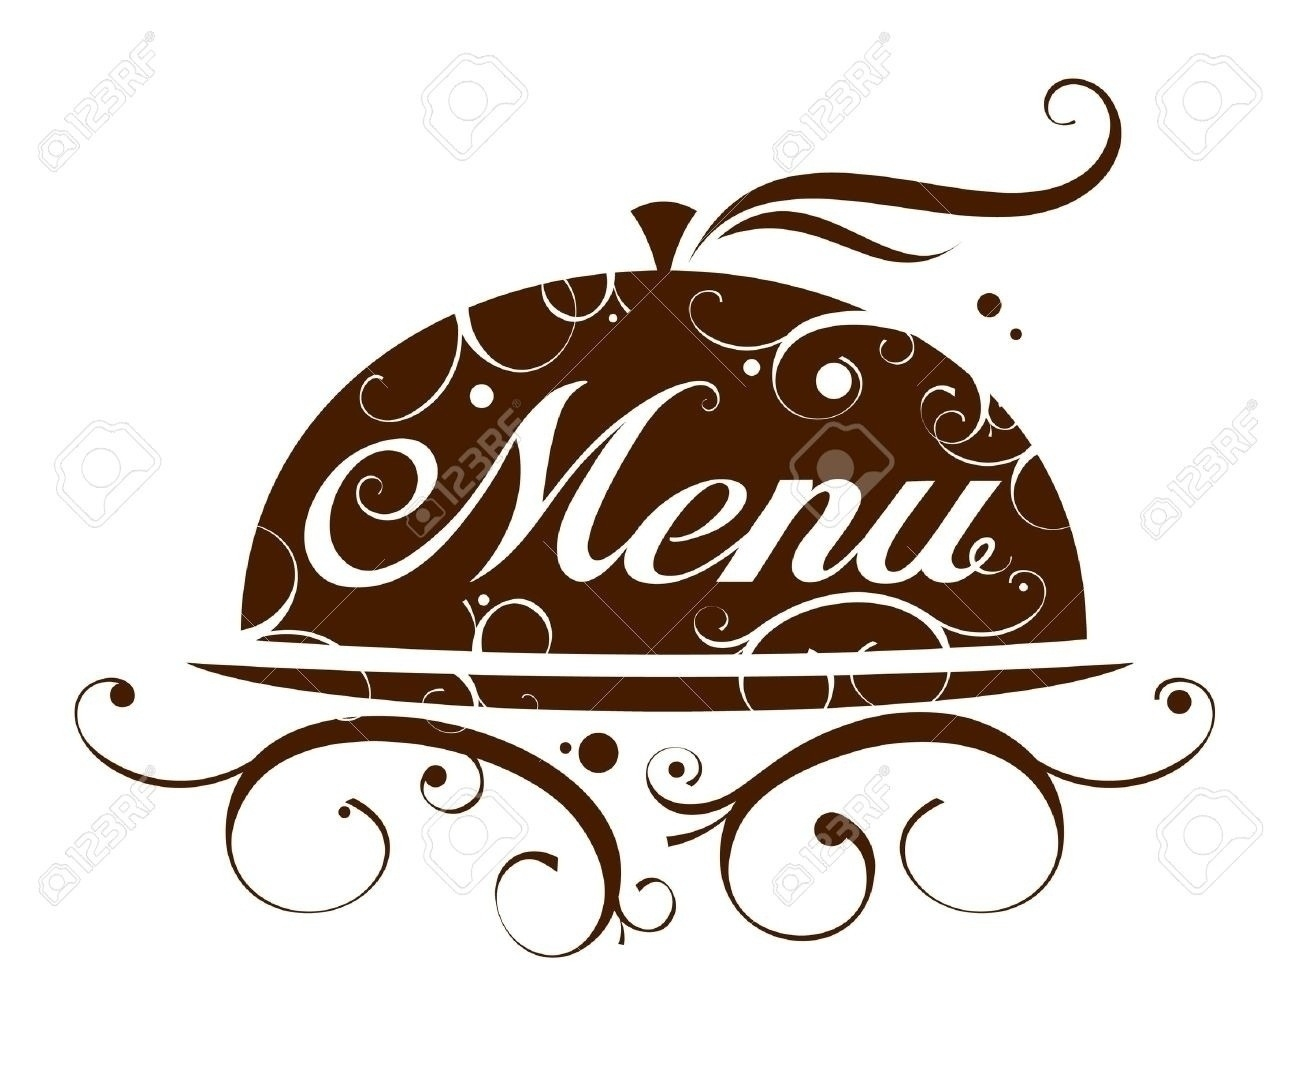 Menu clipart. Dinner writings and essays